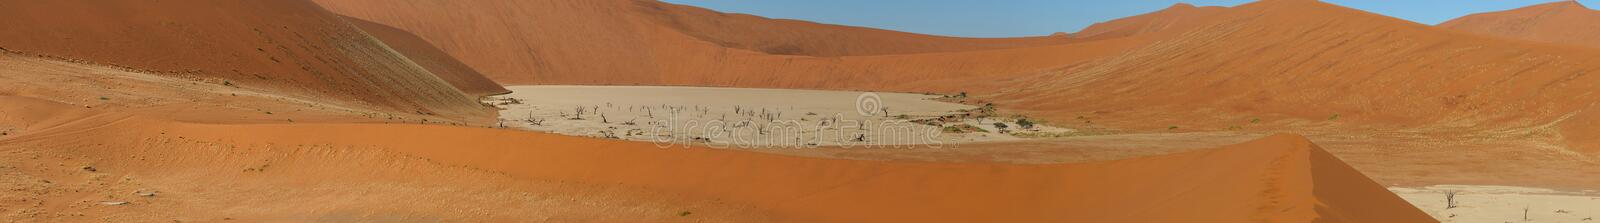 Download Deadvlei panorama 4 stock photo. Image of deadvlei, namibia - 25800194